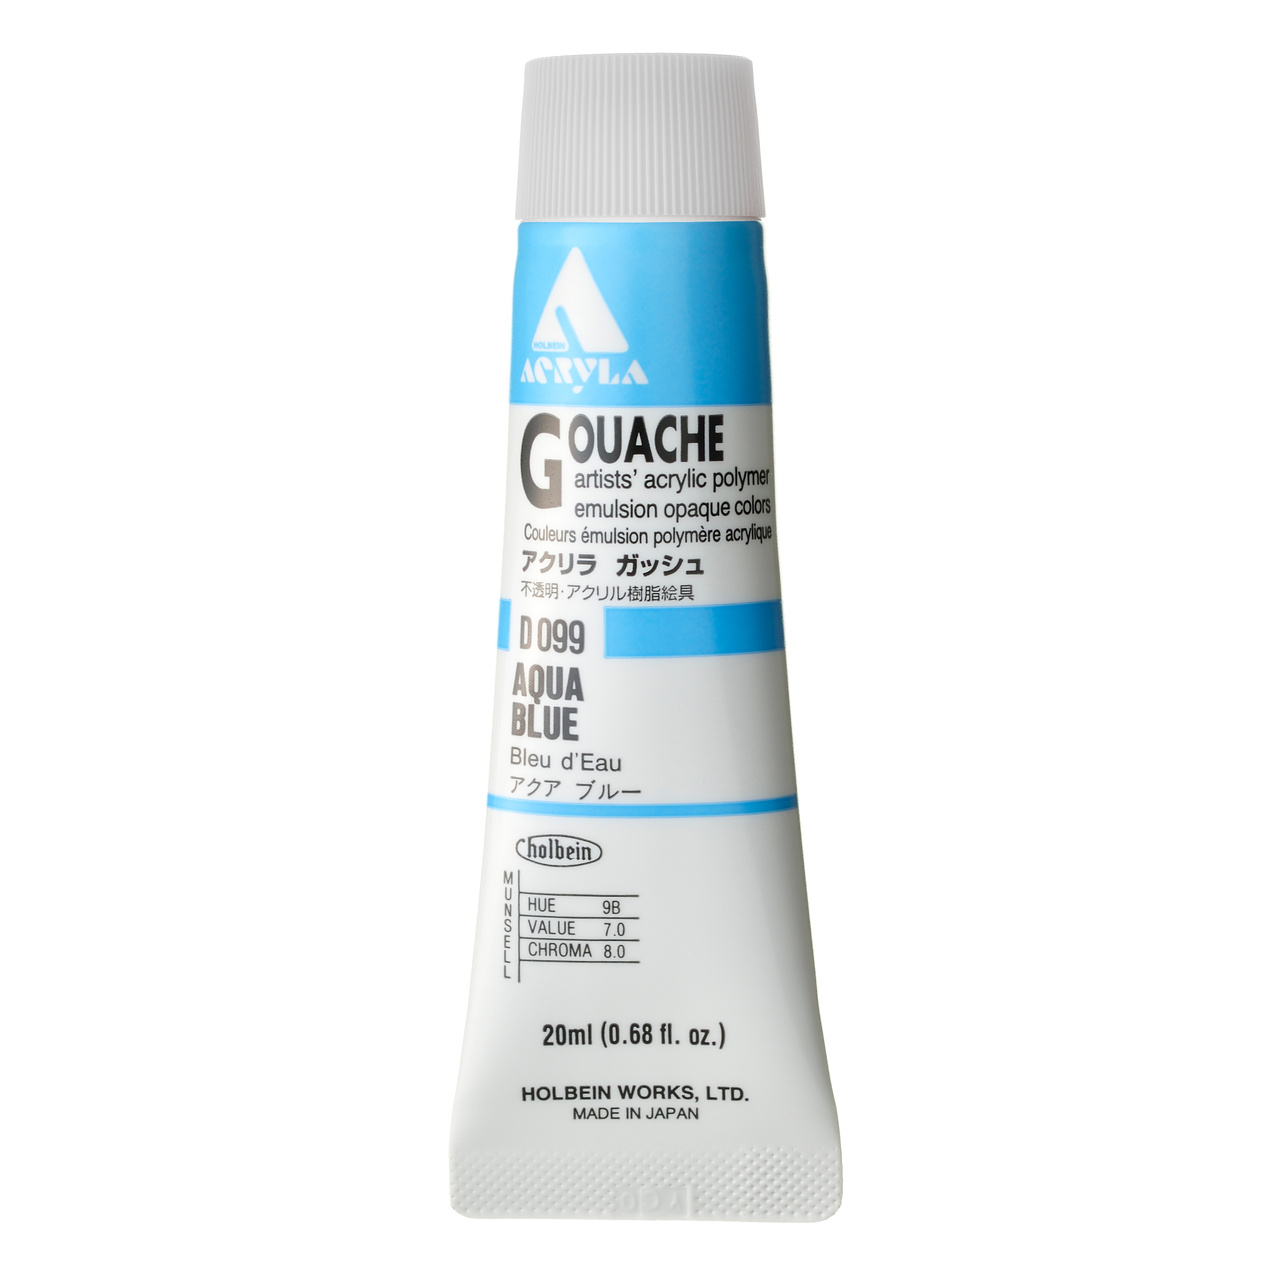 ACRYLA GOUACHE 20ML AQUA BLUE